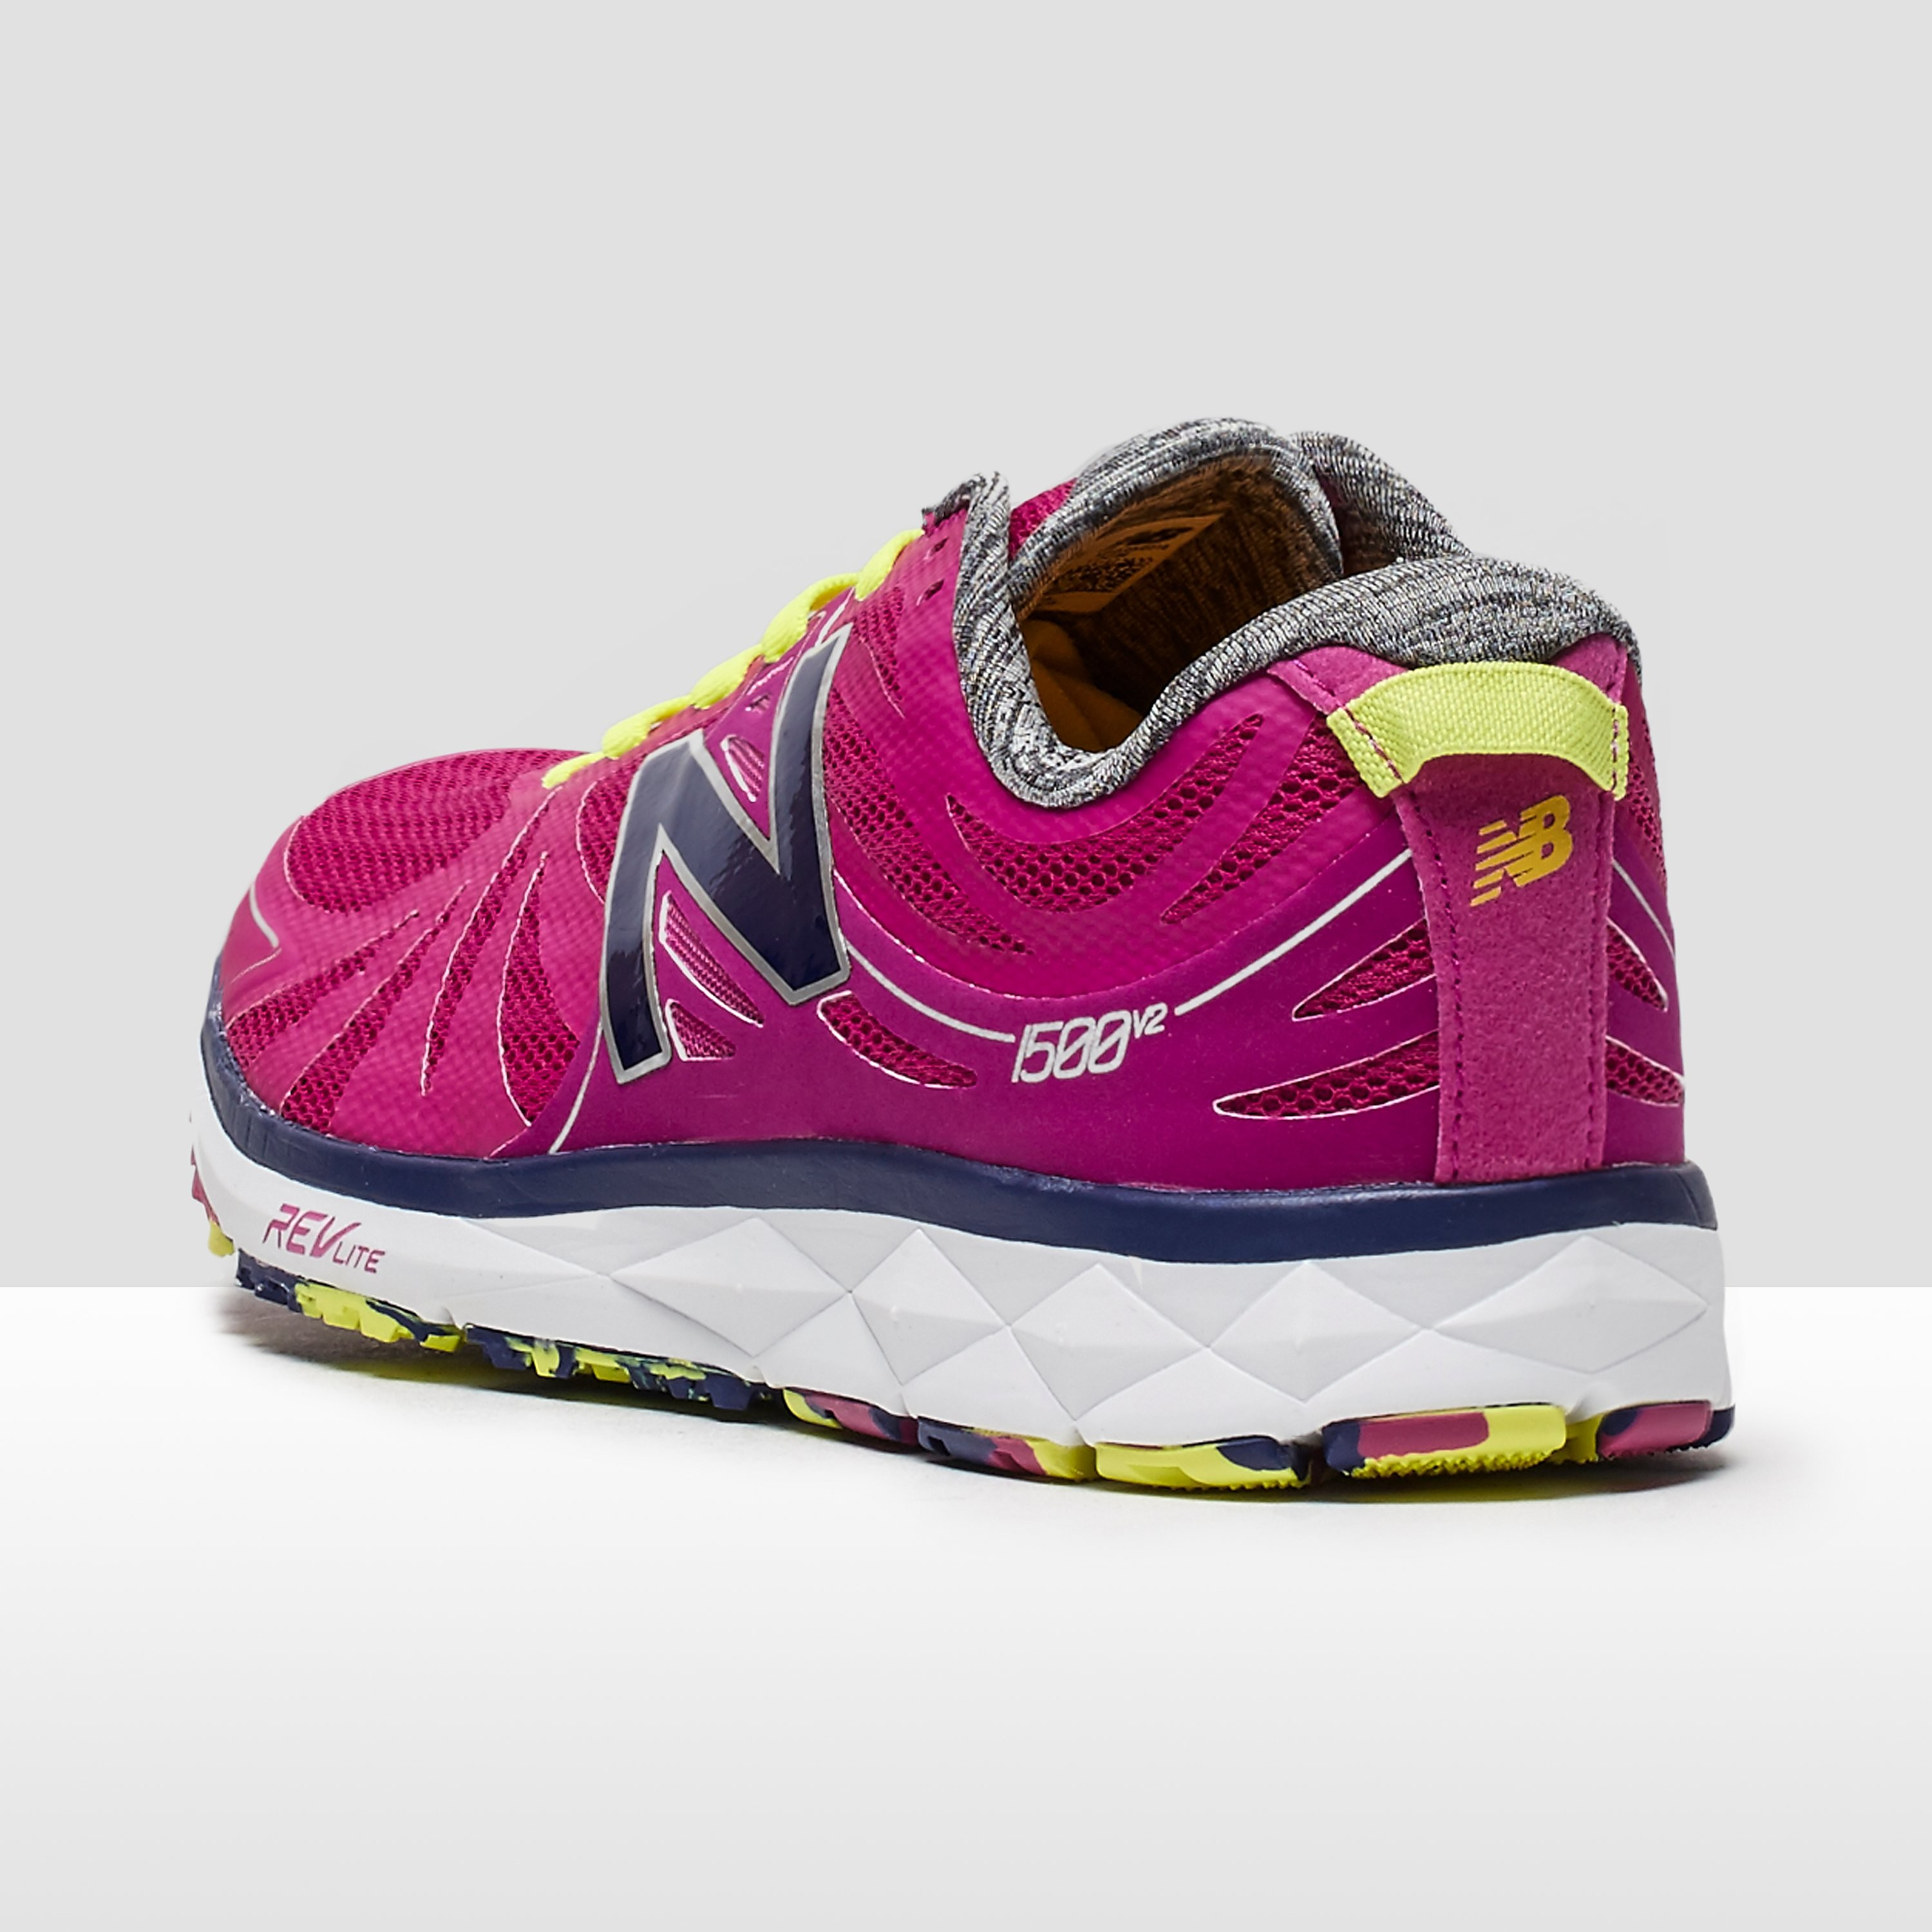 New Balance W1500v2 women's running shoe